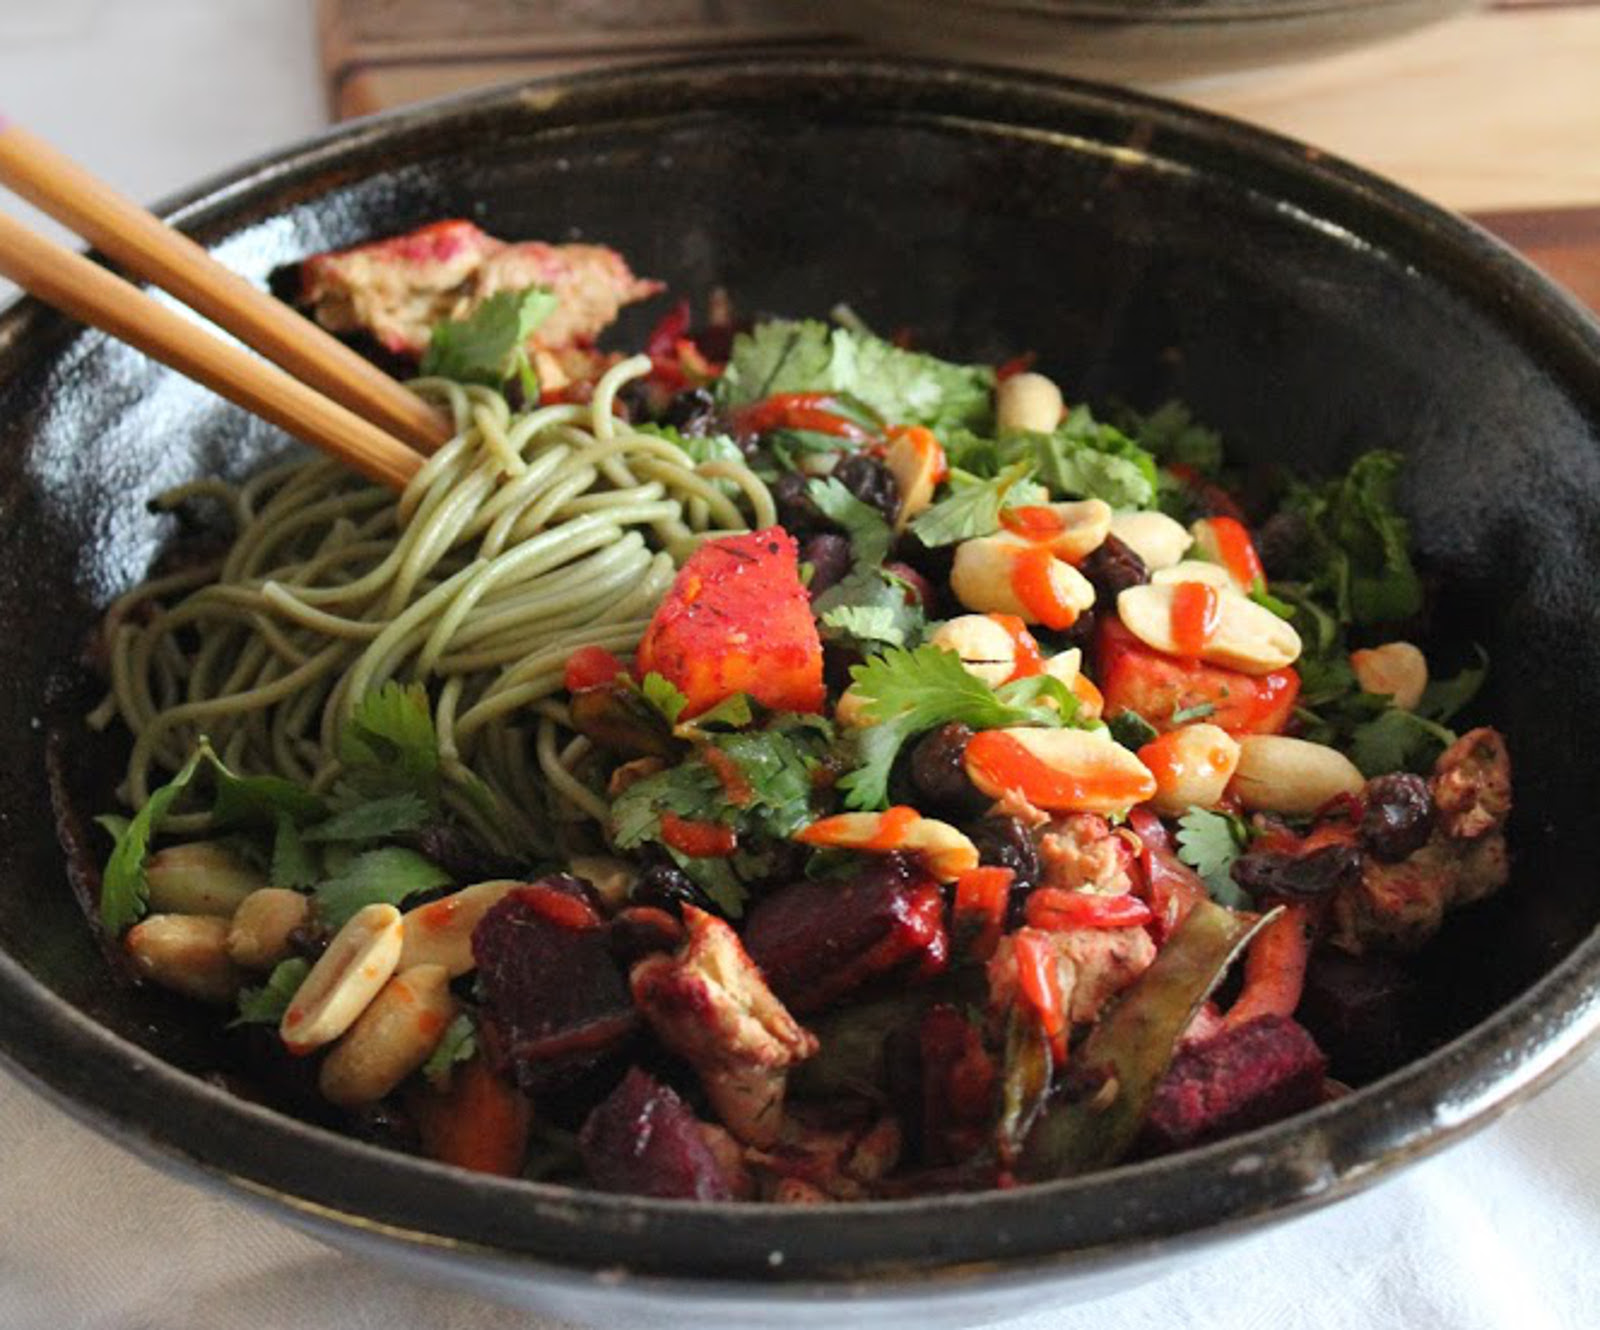 Vegan green tea soba noodles with roasted vegetables and herbs